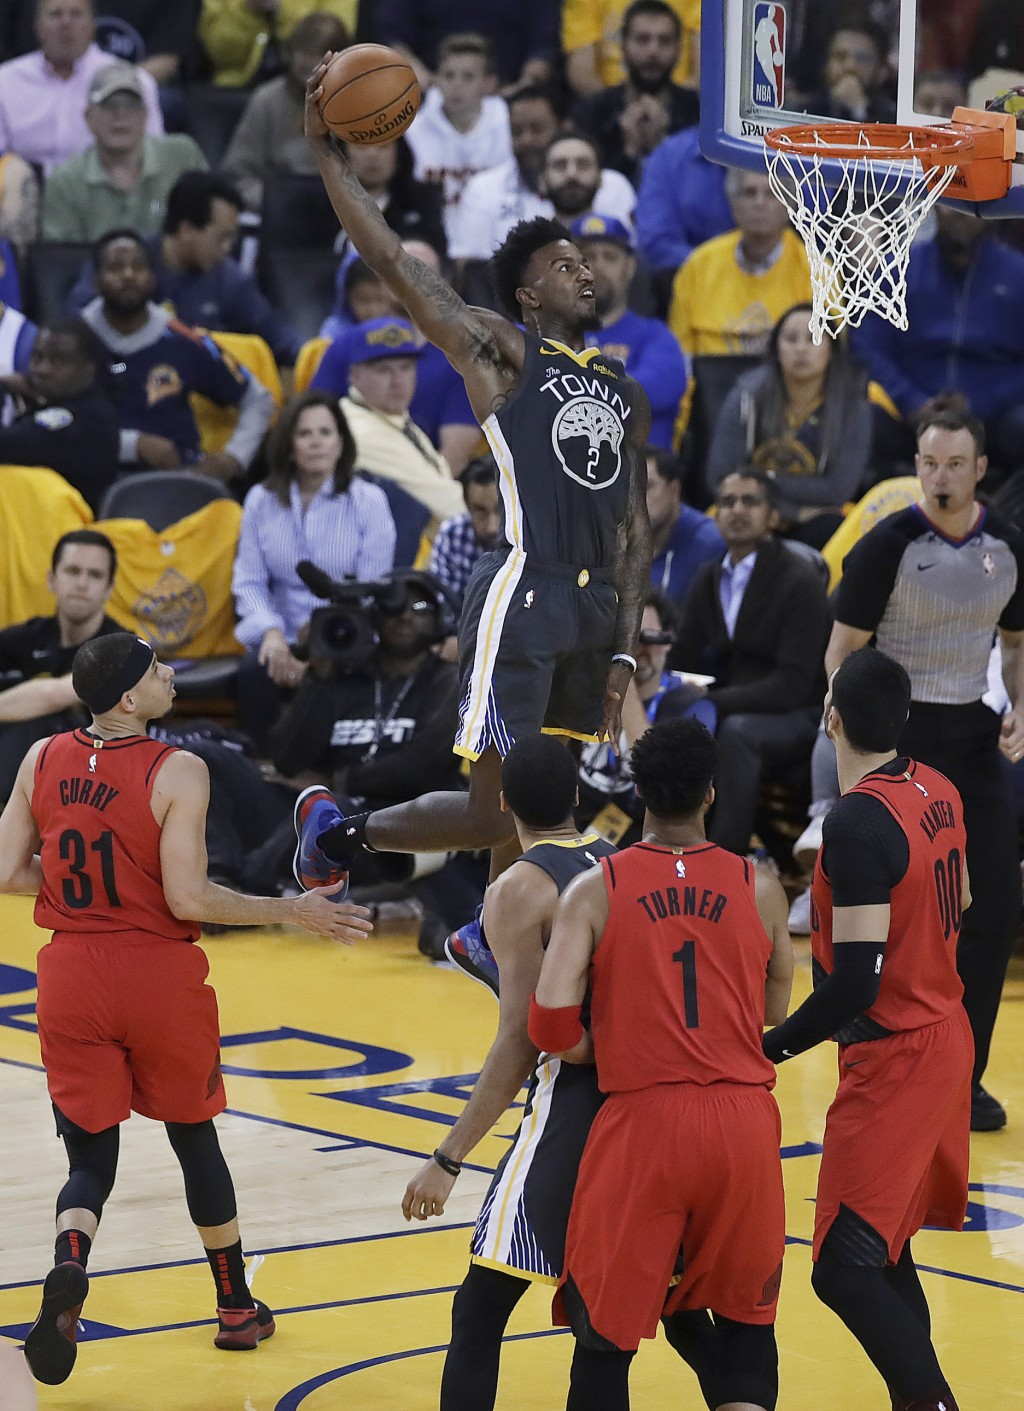 Golden State Warriors forward Jordan Bell (2) dunks against the Portland Trail Blazers during the first half of Game 2 of the NBA basketball playoffs